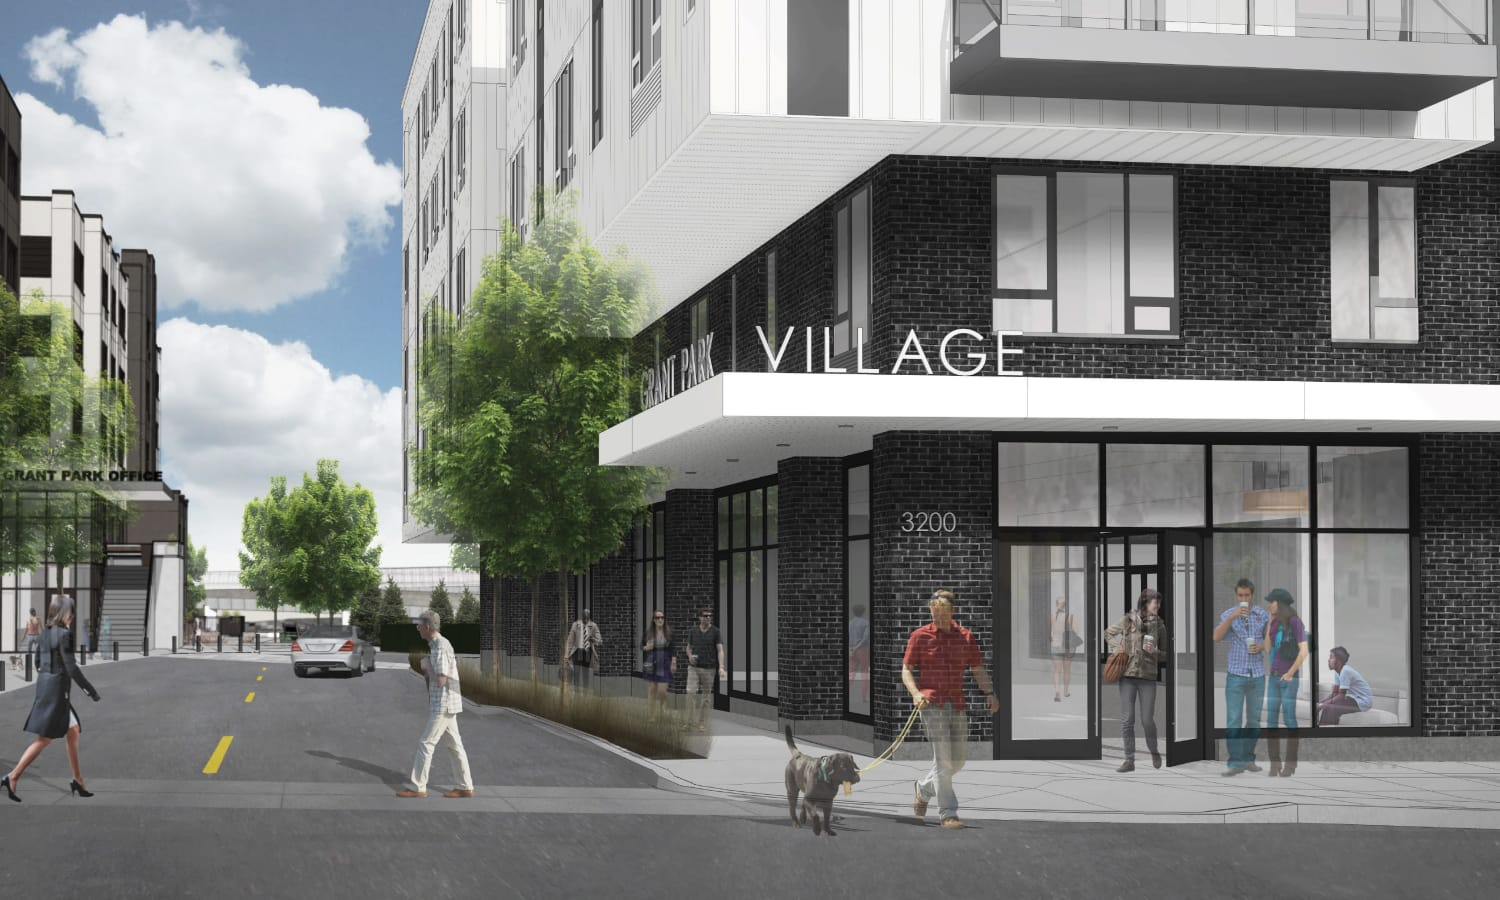 Exterior rendering of street view at Grant Park Village - Quimby, from NE 32nd and NE Weidler in Portland, OR